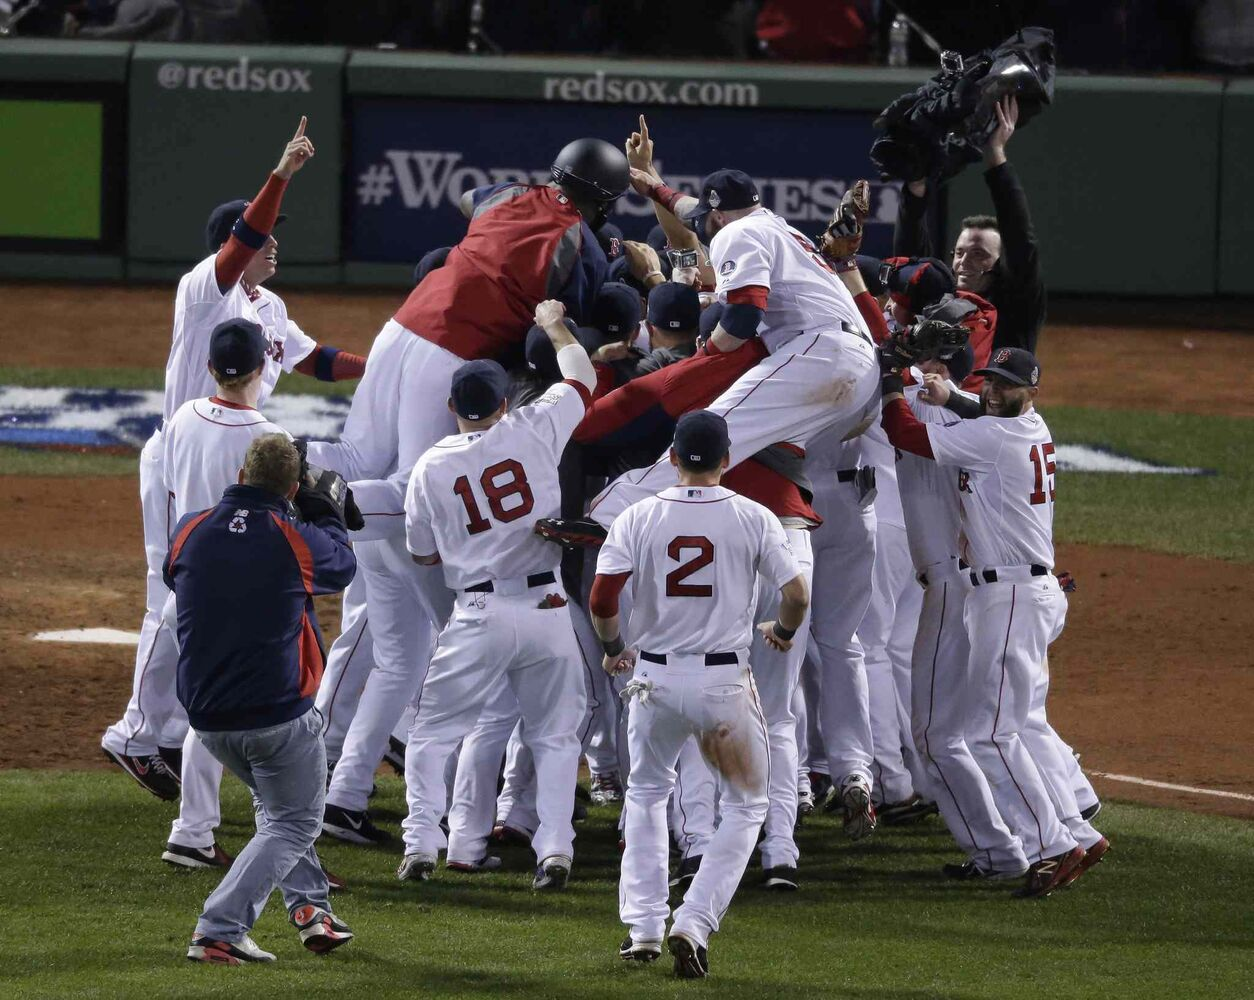 The Boston Red Sox celebrate after defeating the St. Louis Cardinals. (Charlie Riedel / The Associated Press)